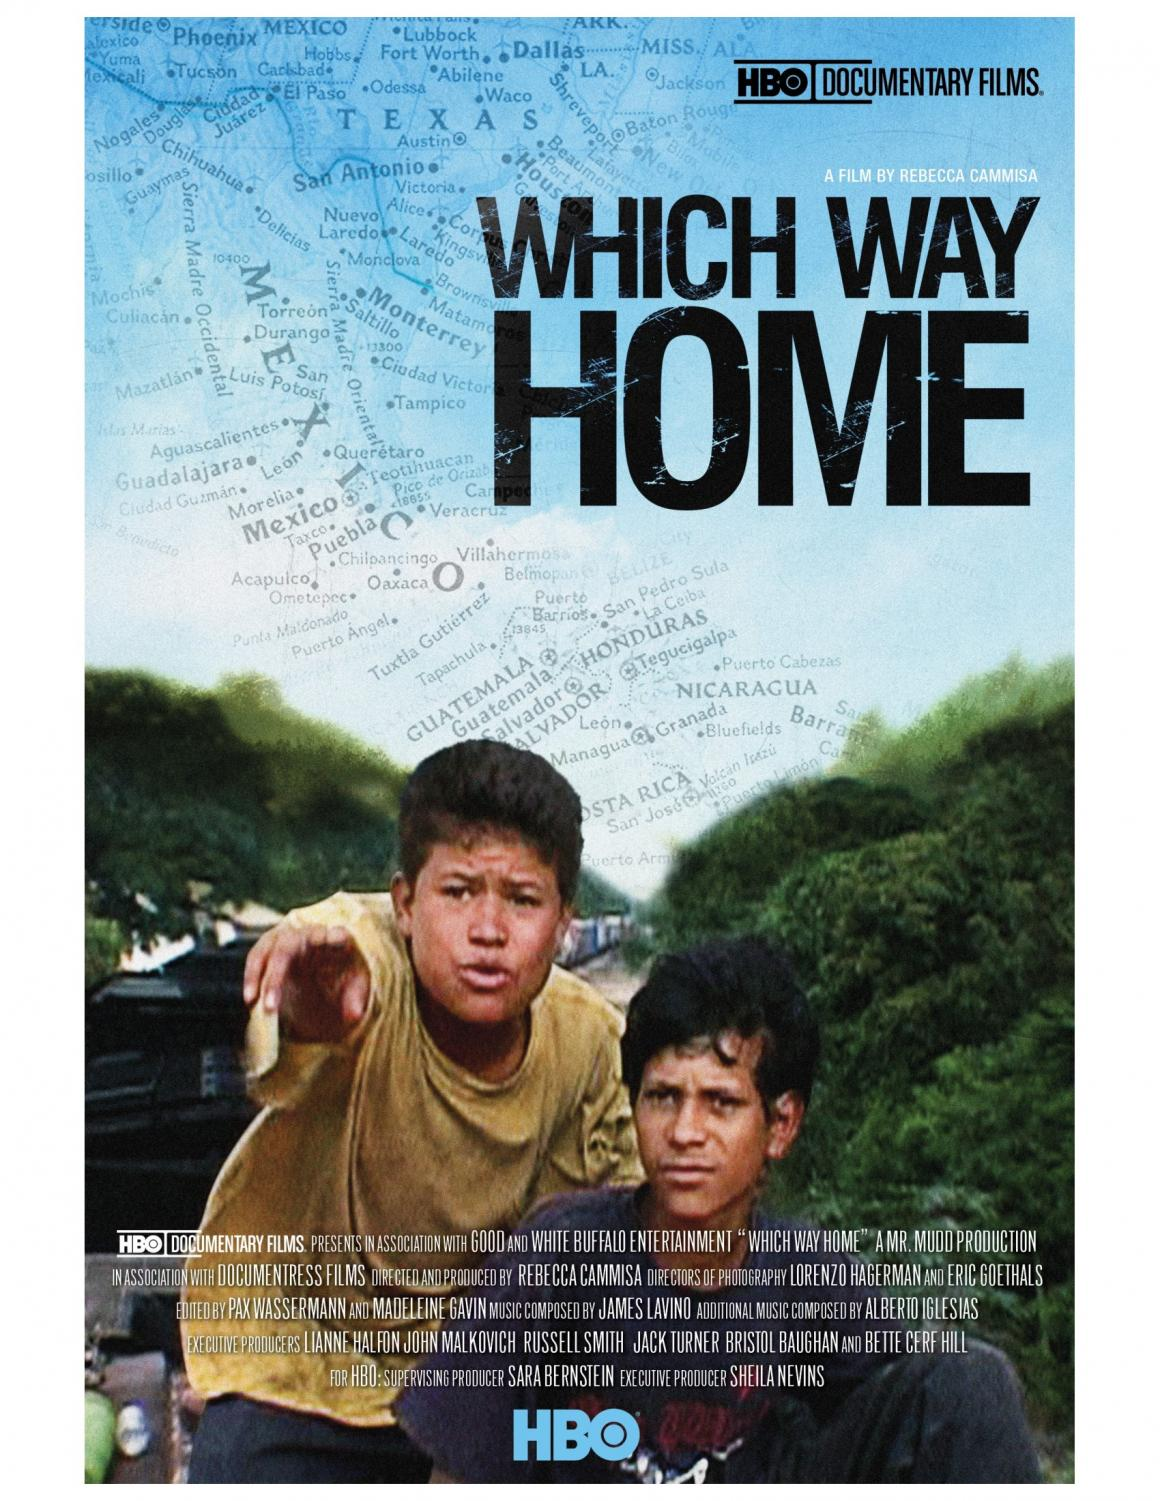 Film poster for Which Way Home directed by Rebecca Cammisa.